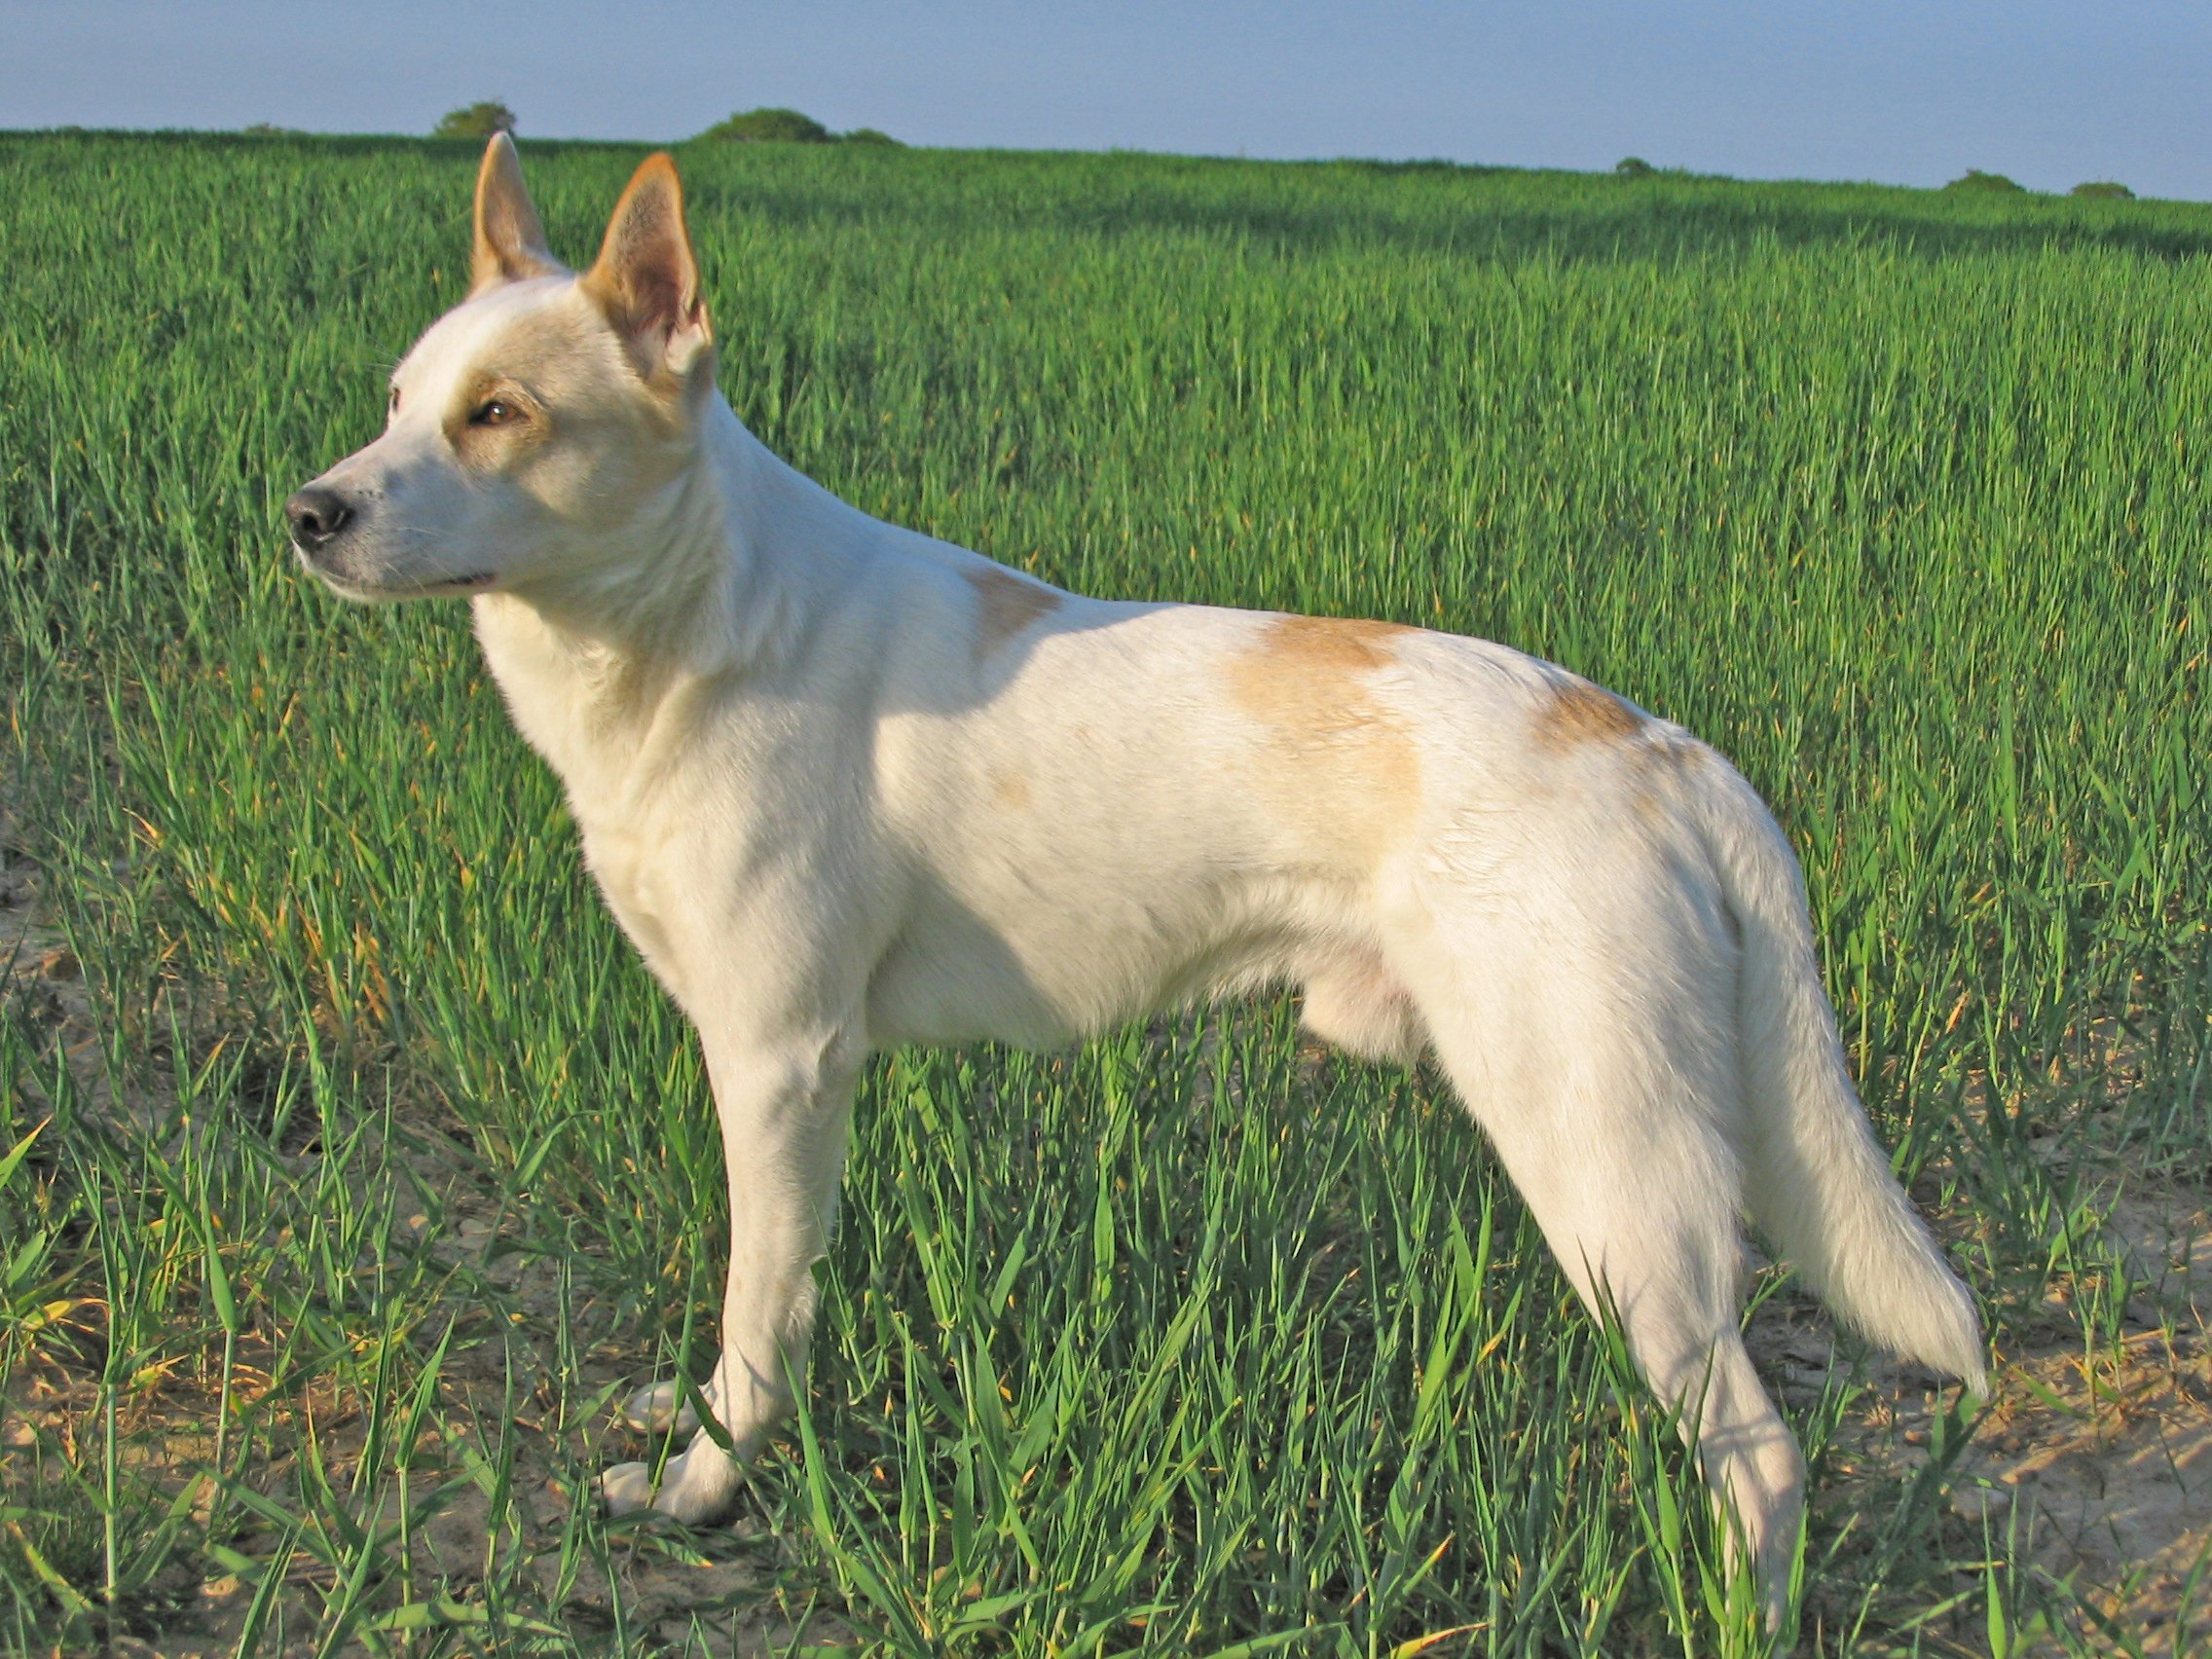 Dog breeds: The Canaan Dog temperament and personality